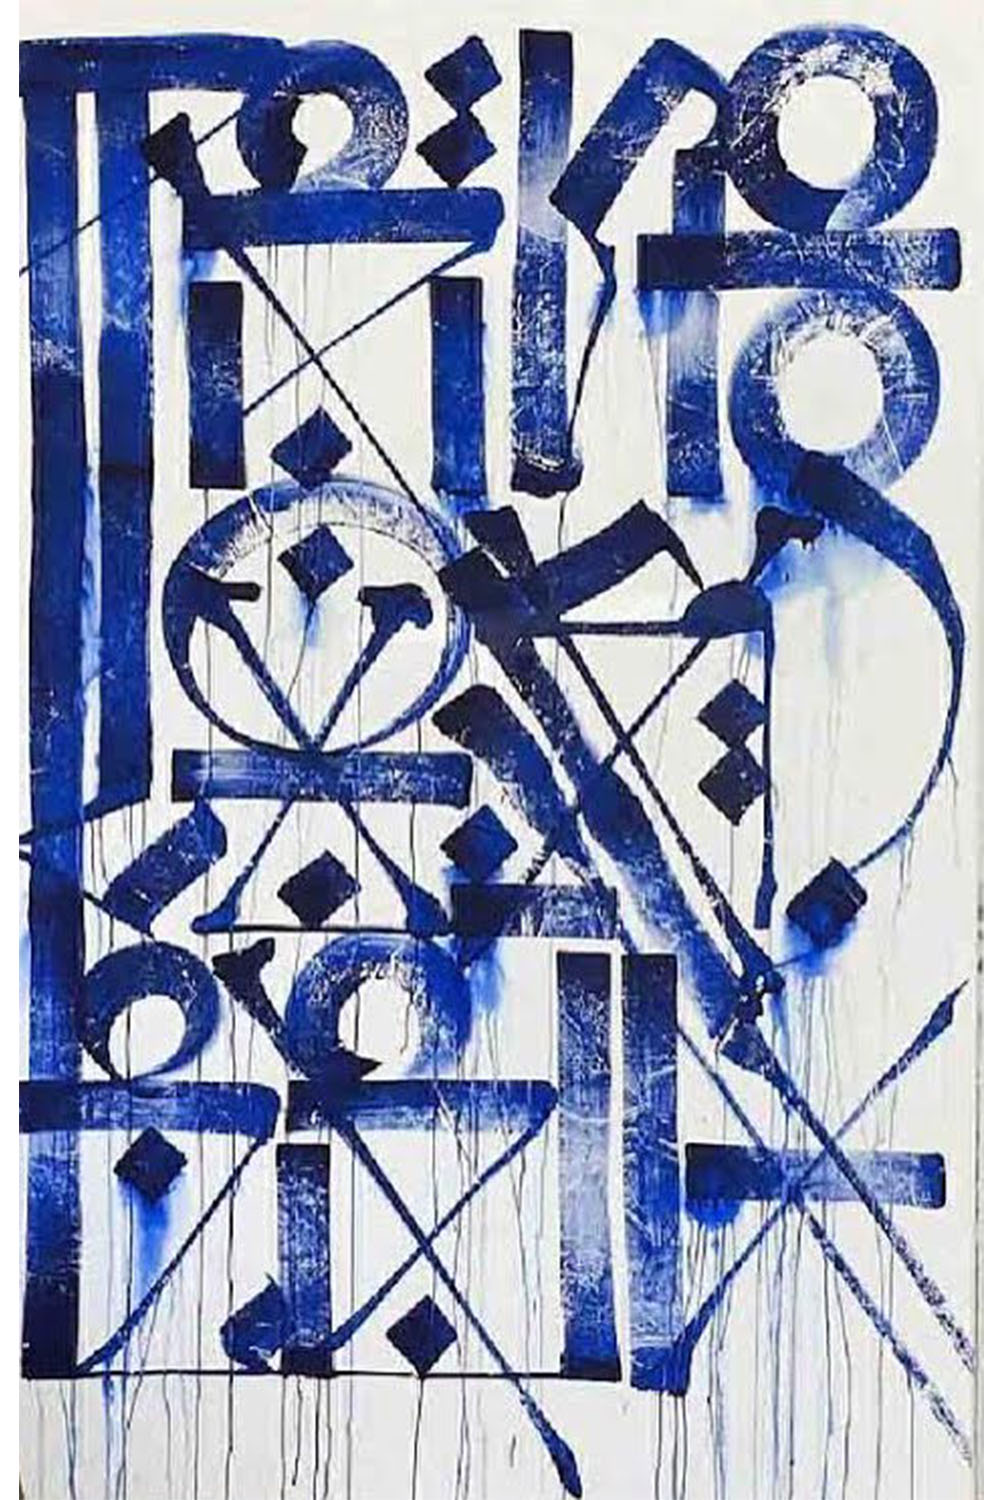 Untitled Blue by Retna